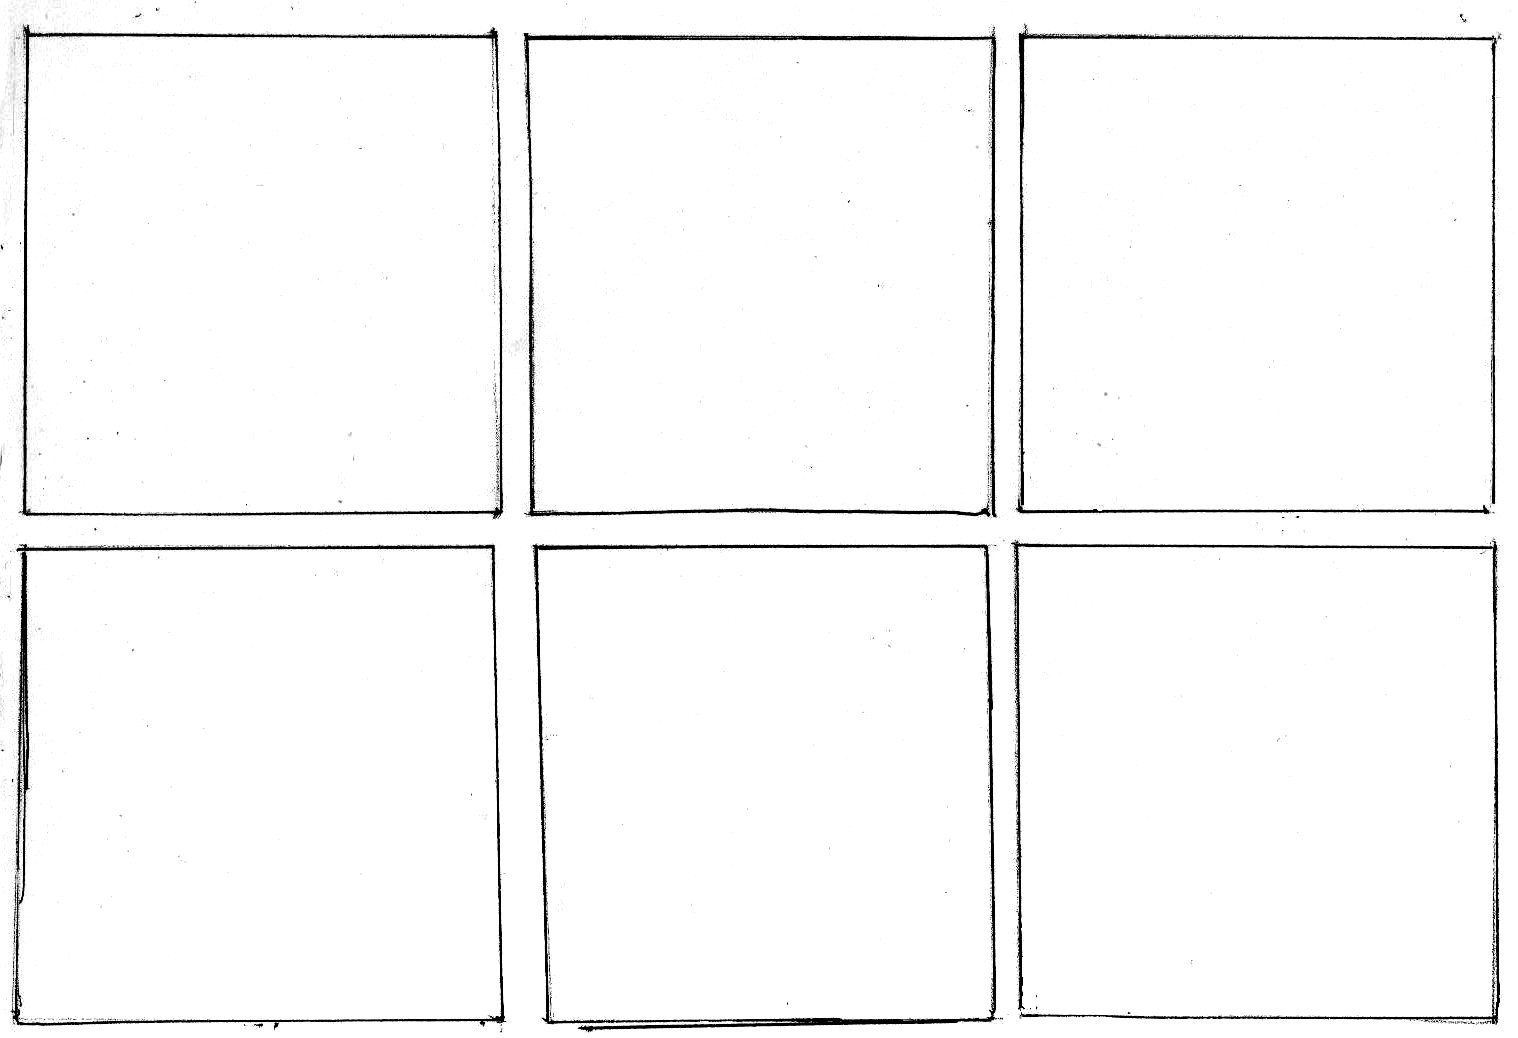 Comic Strip Template Word What Panel Layout Should I Use In My Web Ic